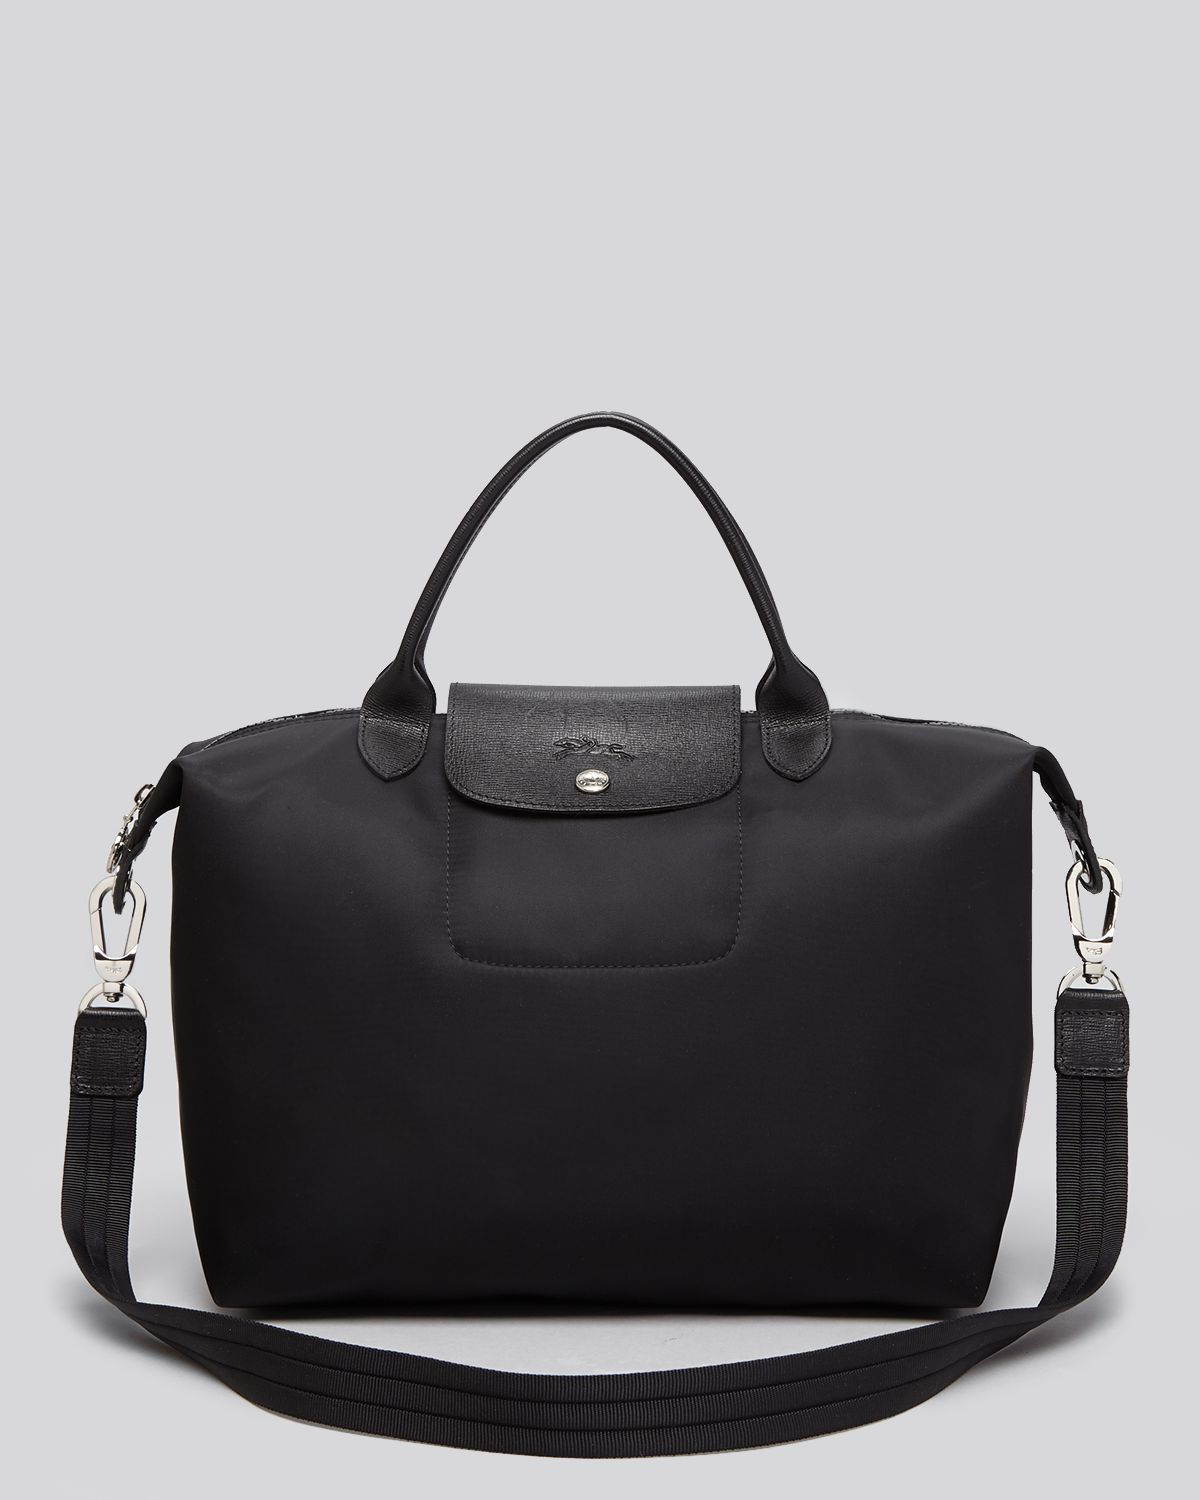 iPhone designer cell phone cases for iphone 5 : Longchamp Le Pliage Neo Medium Tote in Black : Lyst